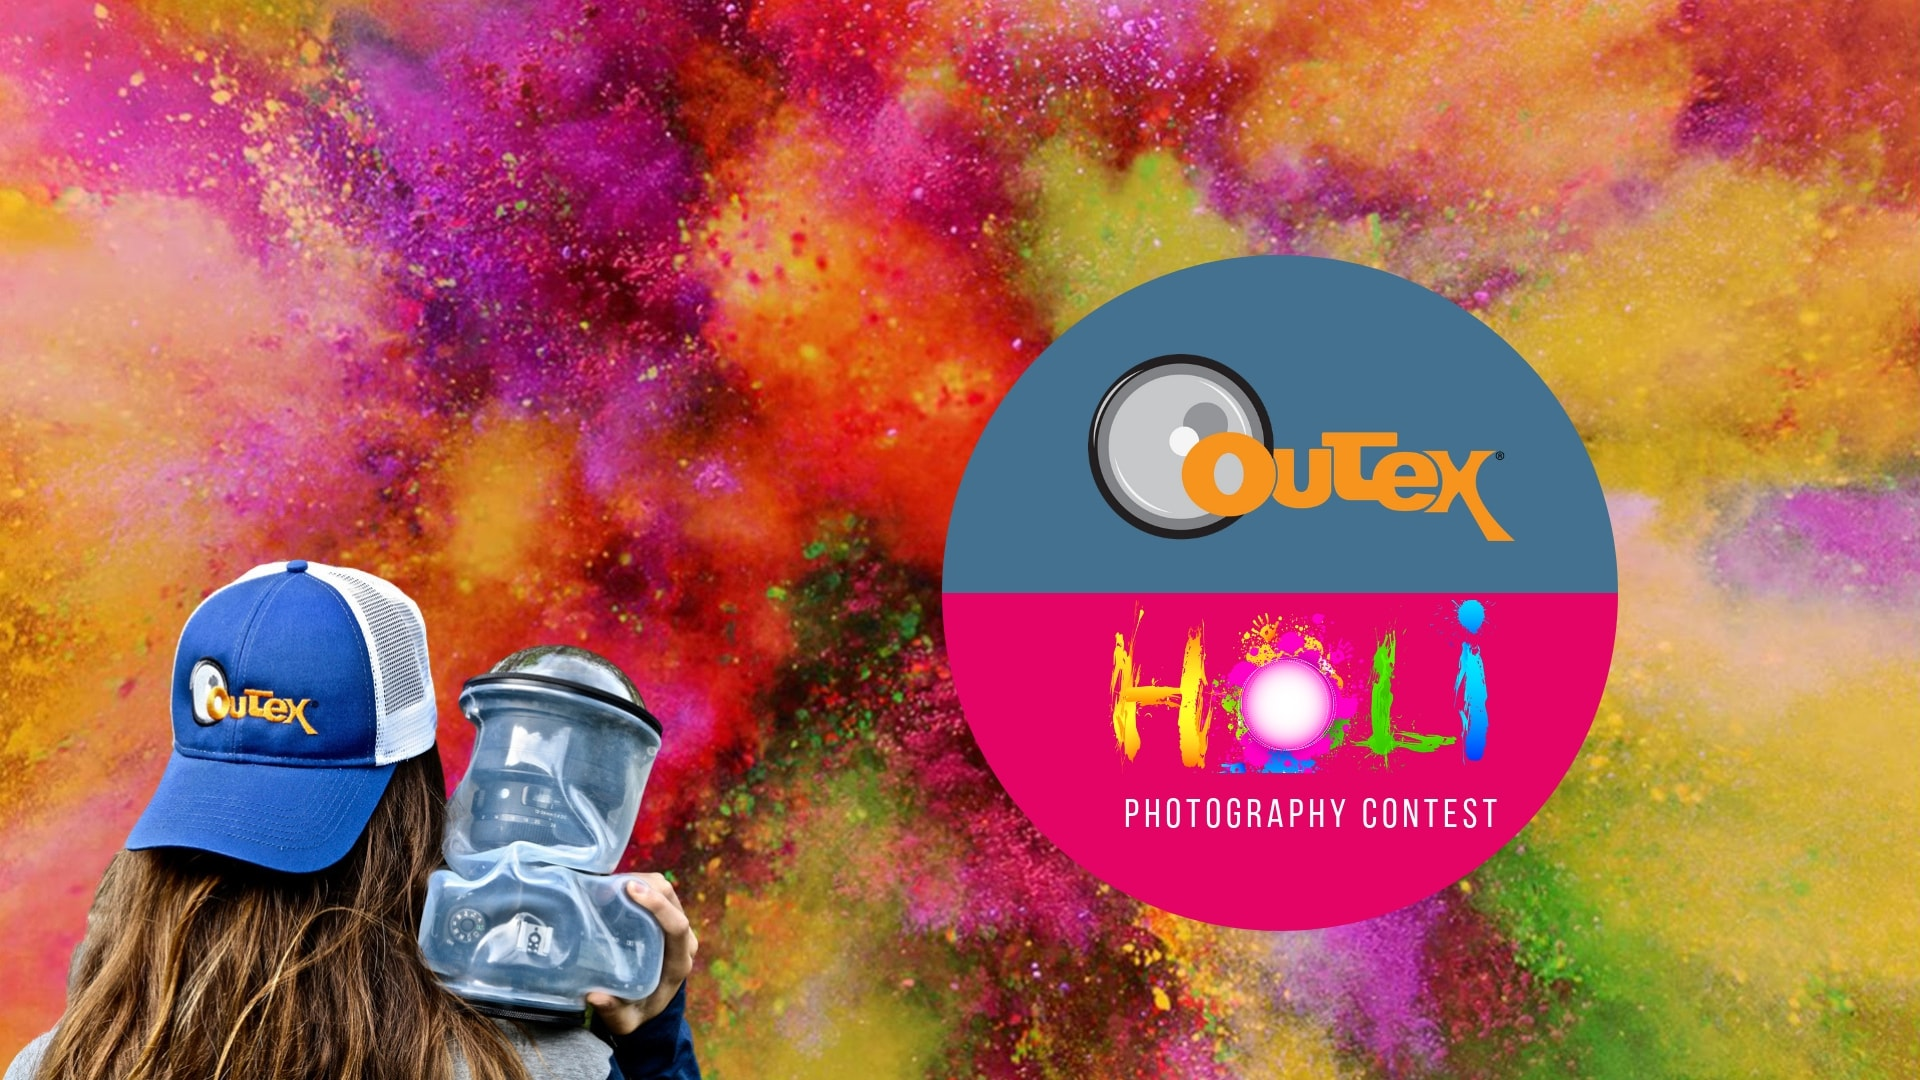 Holi Photography Contest by Chiiz